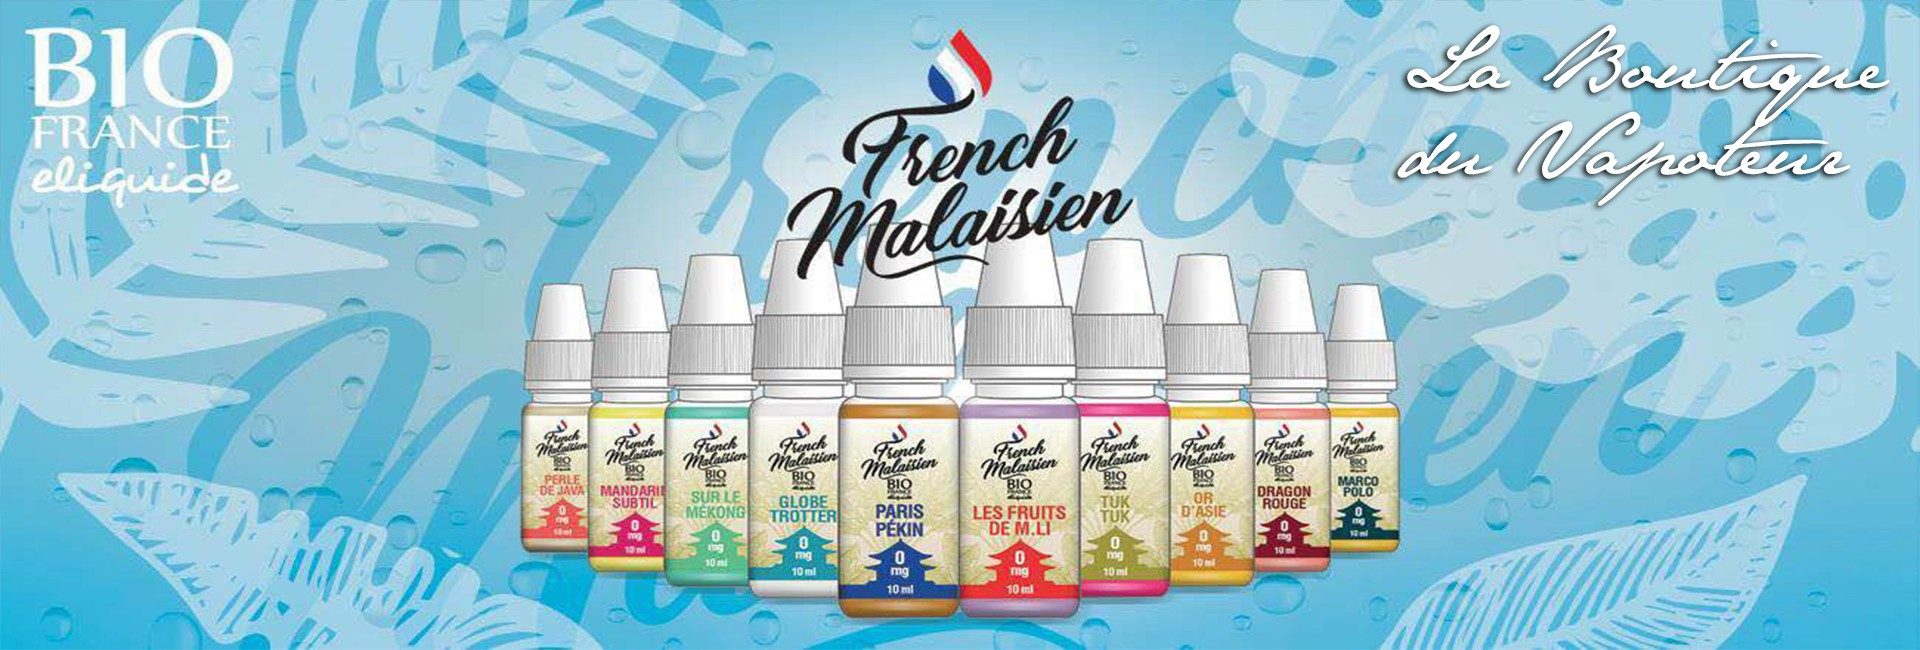 FRENCH MALAISIEN